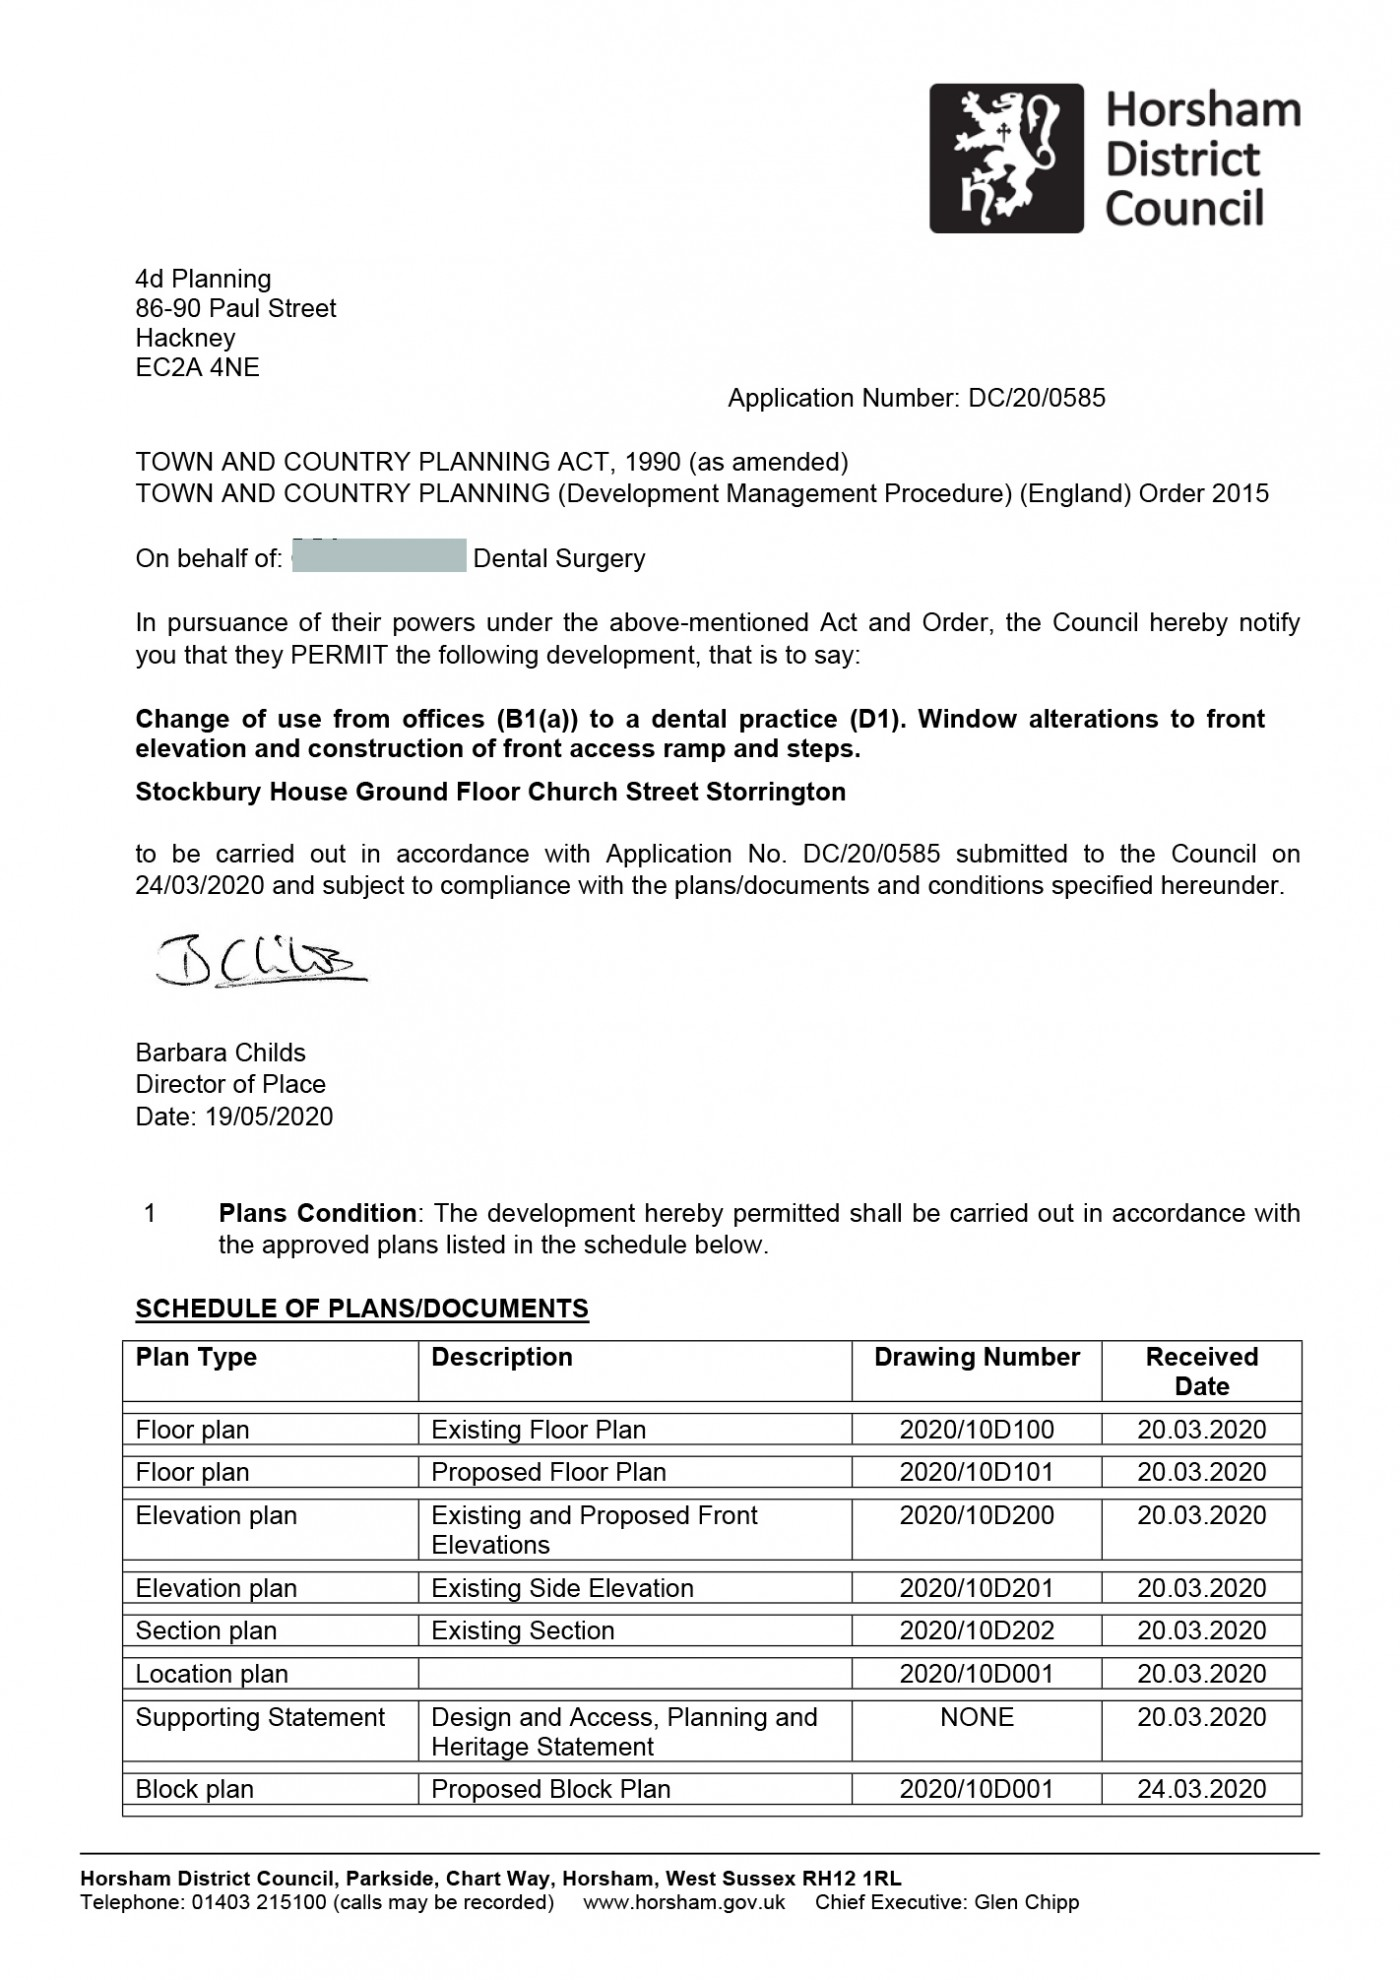 Approval Notice - Horsham Council